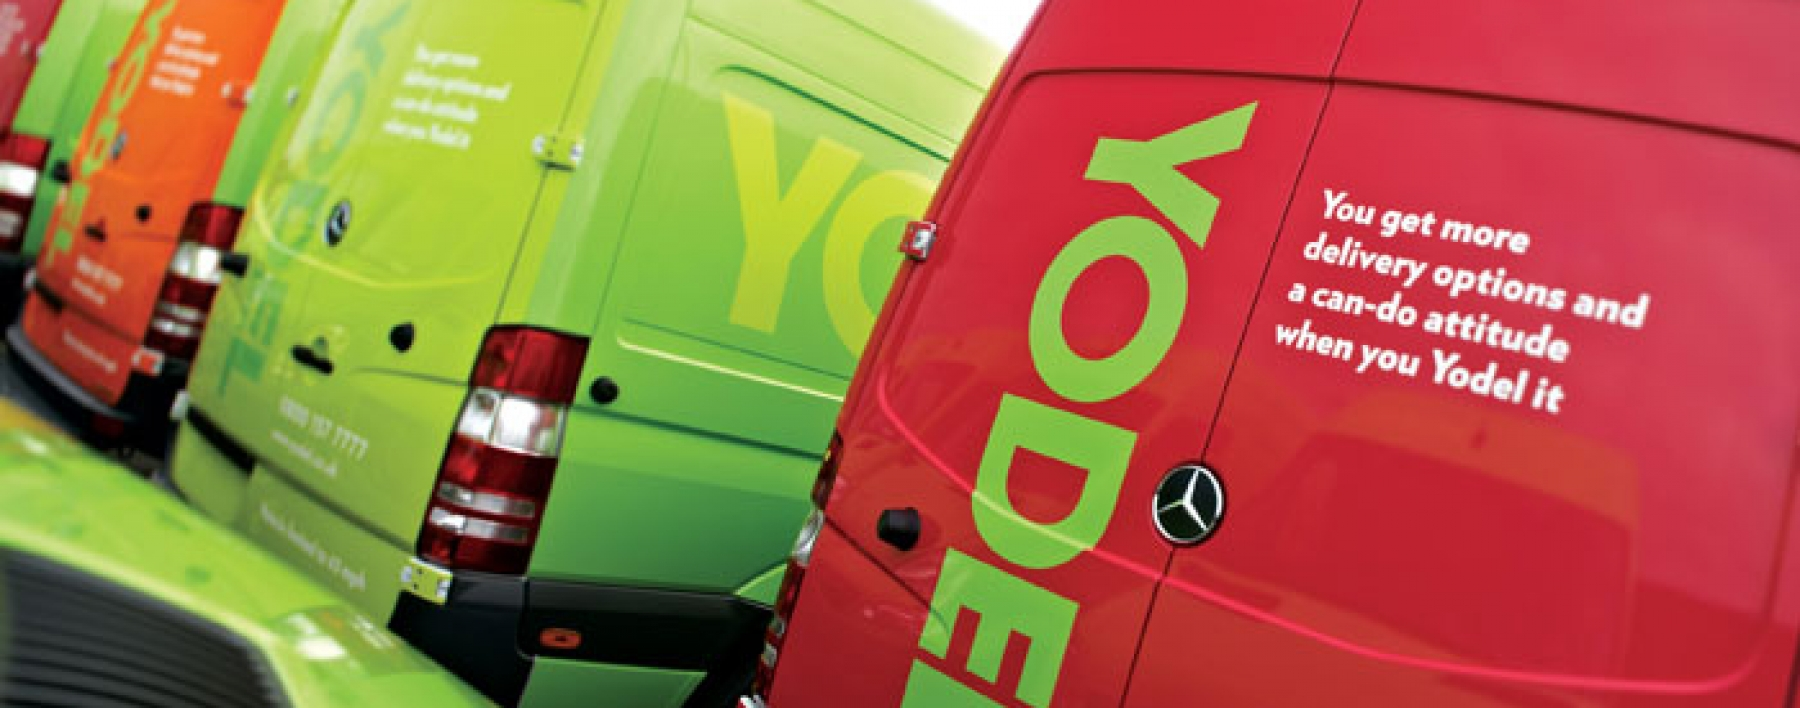 Yodel vehicle livery by Ast Transport Branding